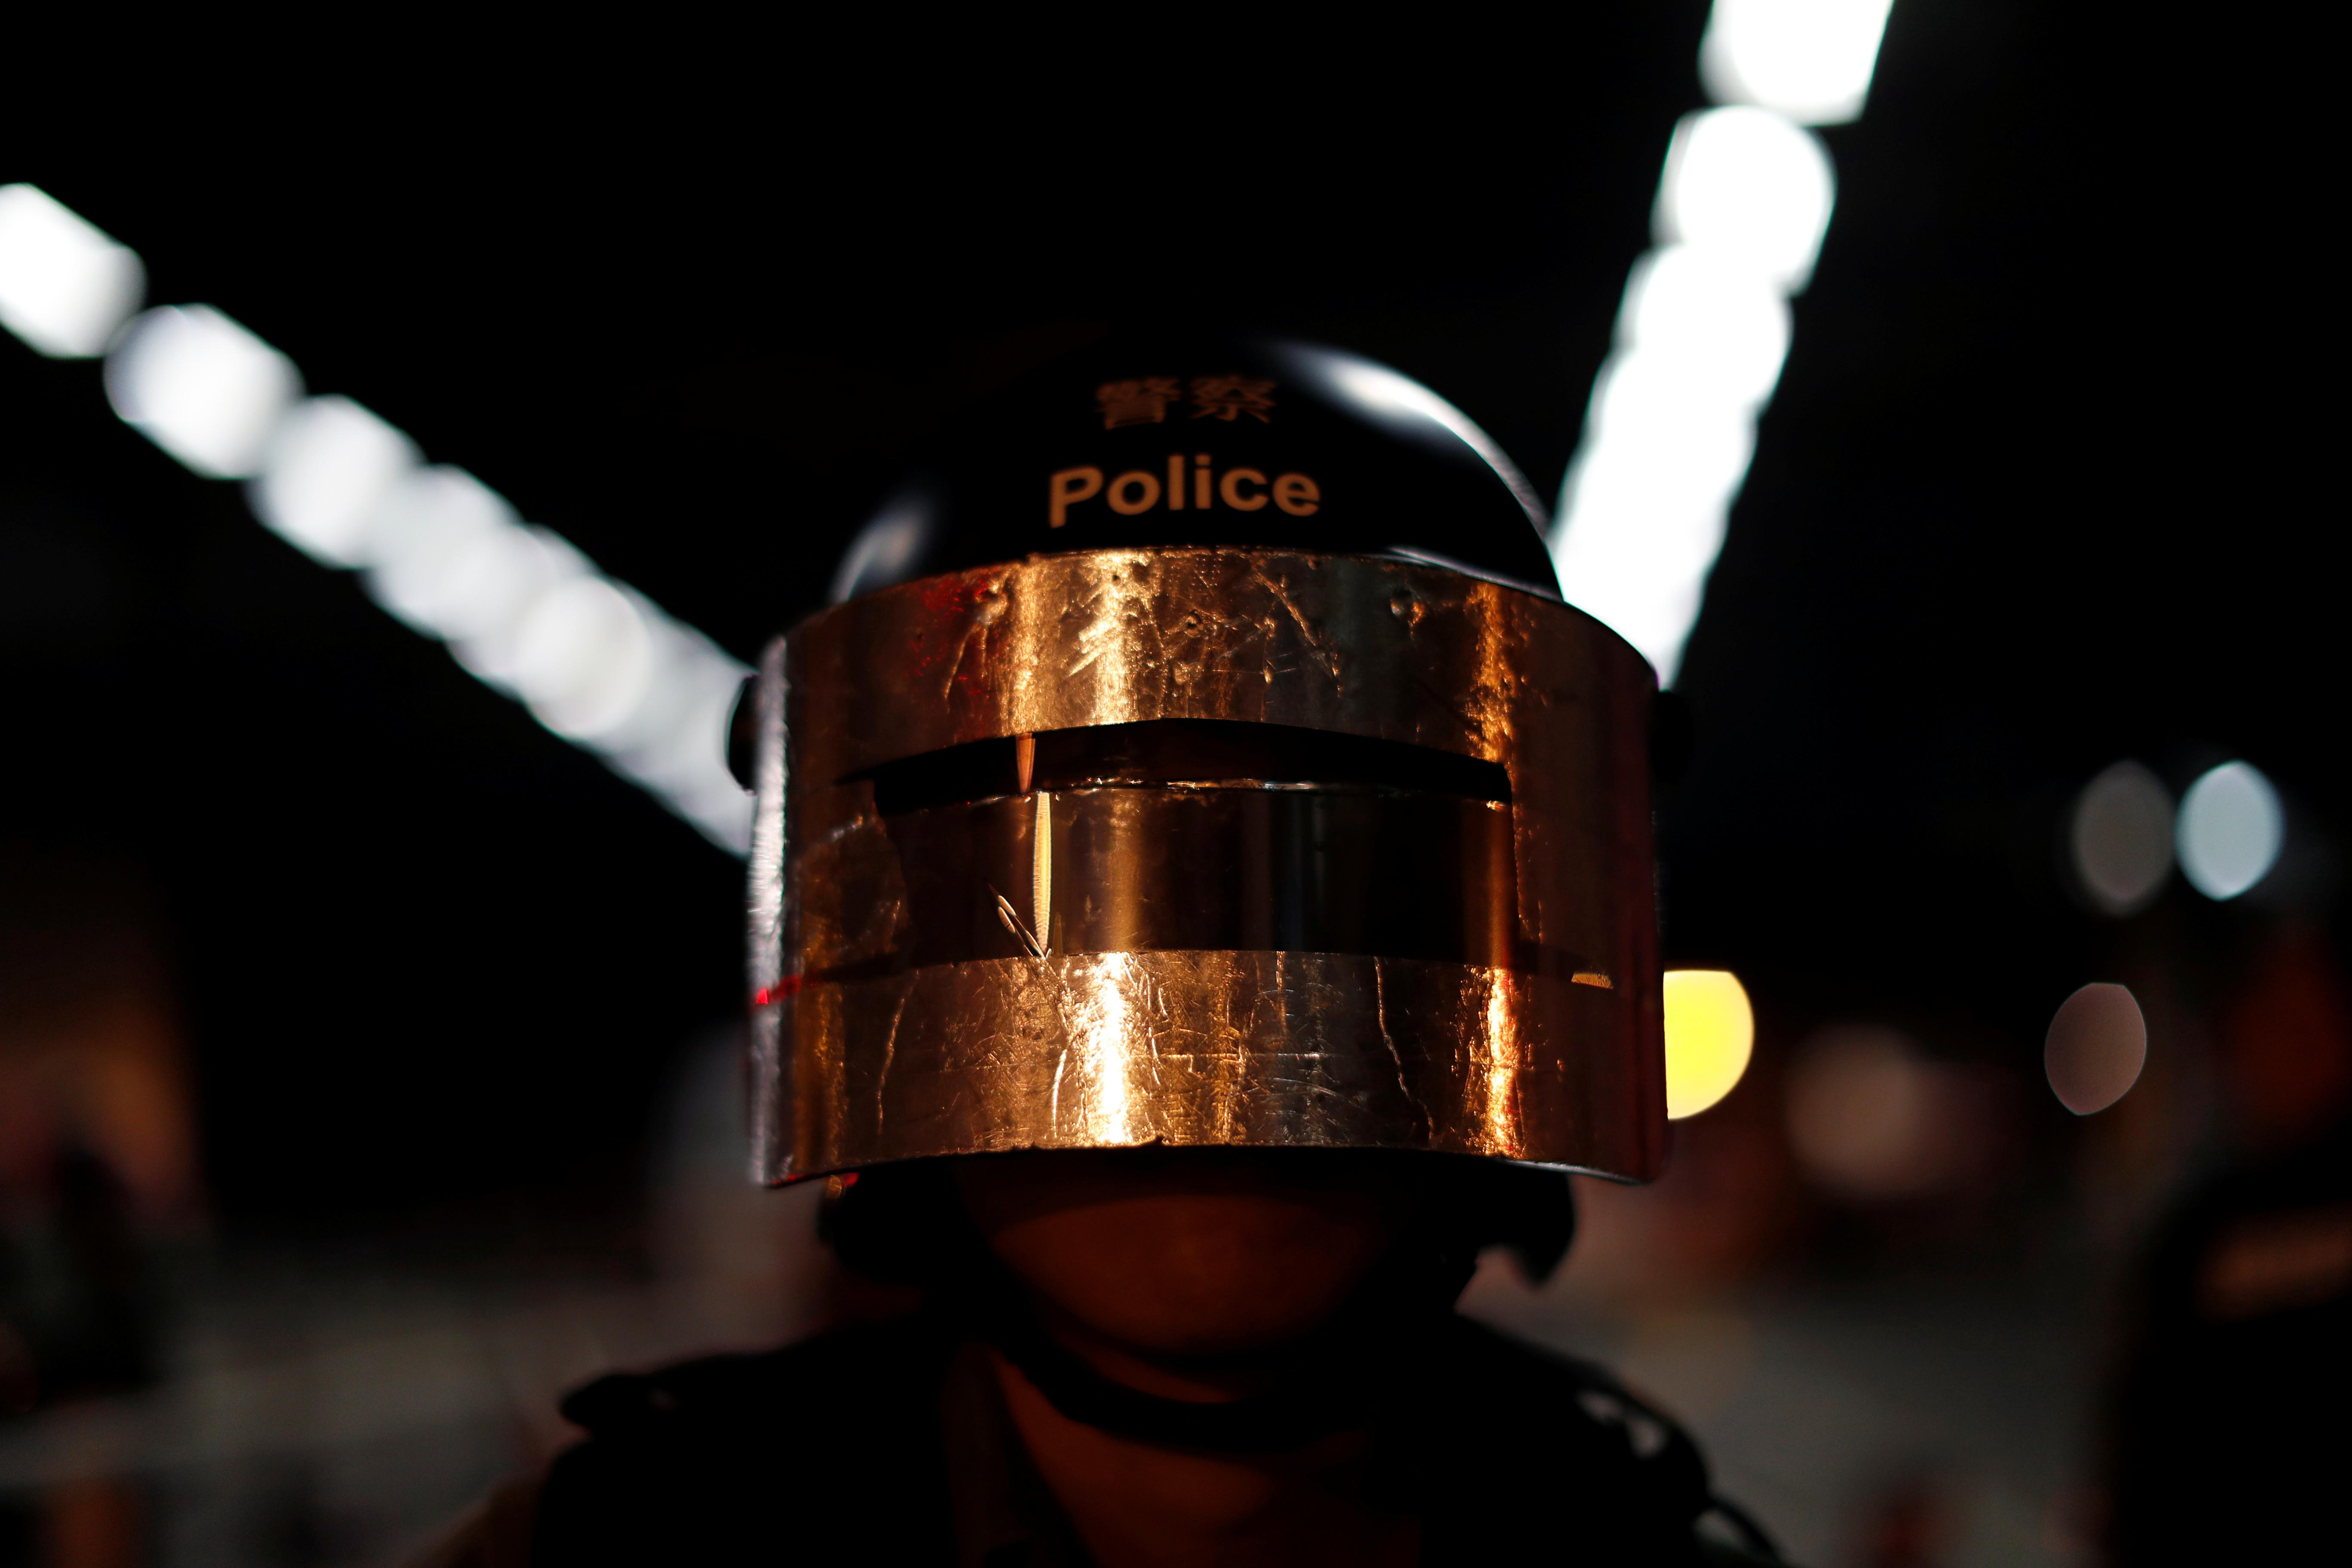 Hong Kong police fire tear gas after protesters throw petrol bombs